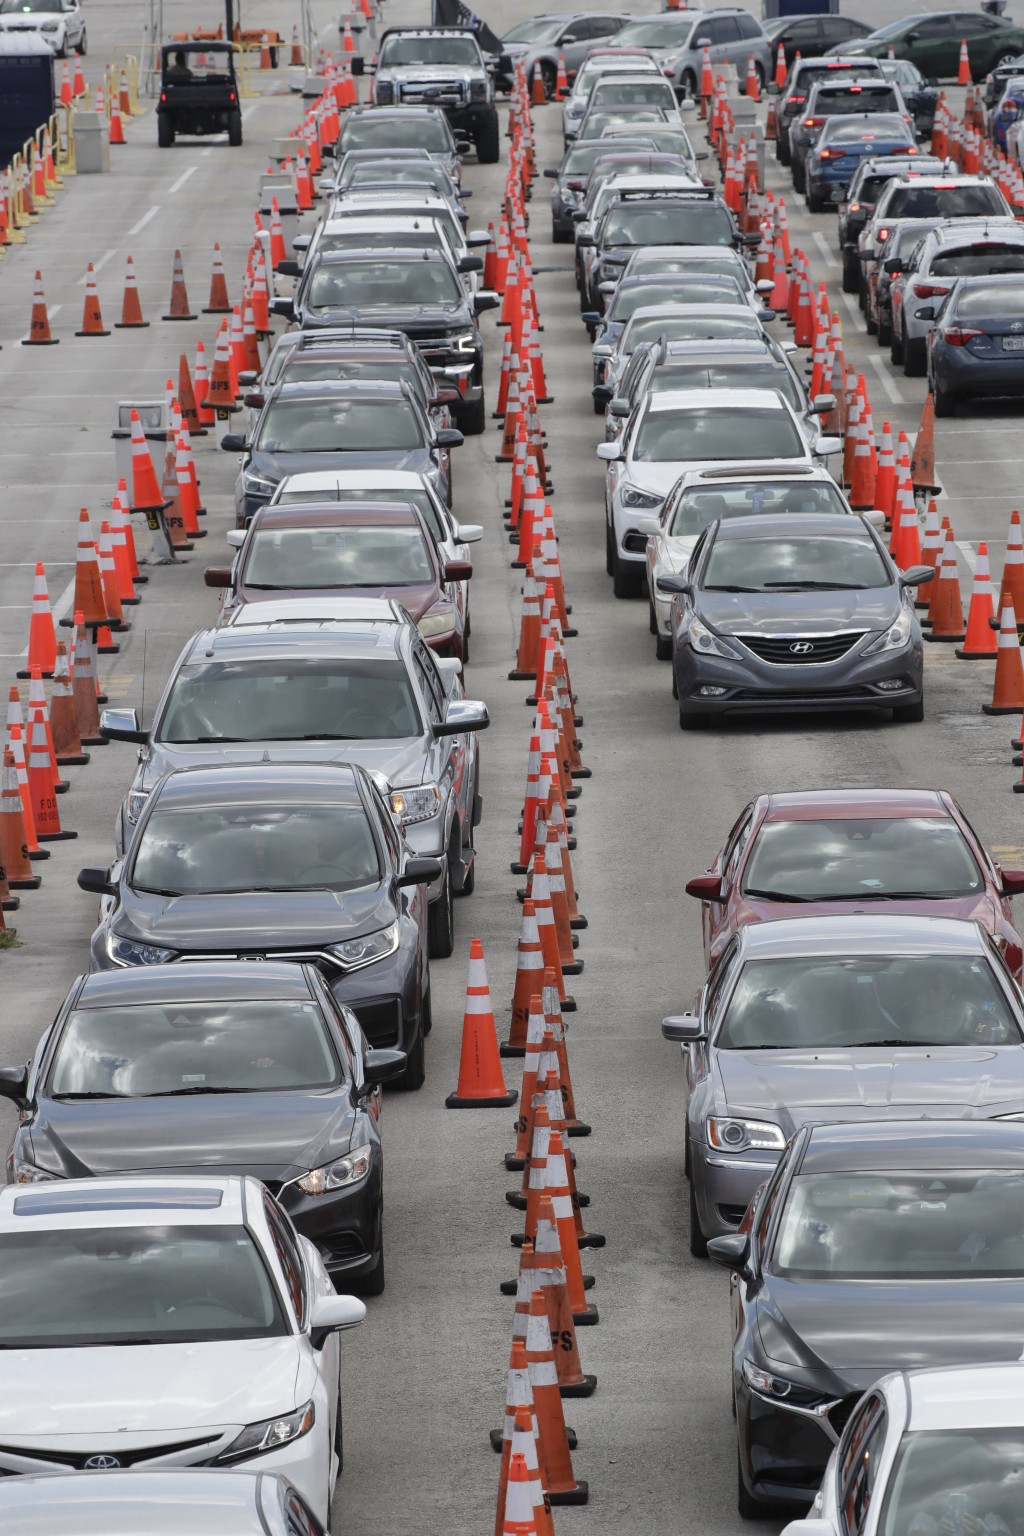 FILE - Cars wait in line at a drive-through COVID-19 testing site outside Hard Rock Stadium, in a Wednesday, July 8, 2020 file photo, in Miami Gardens...